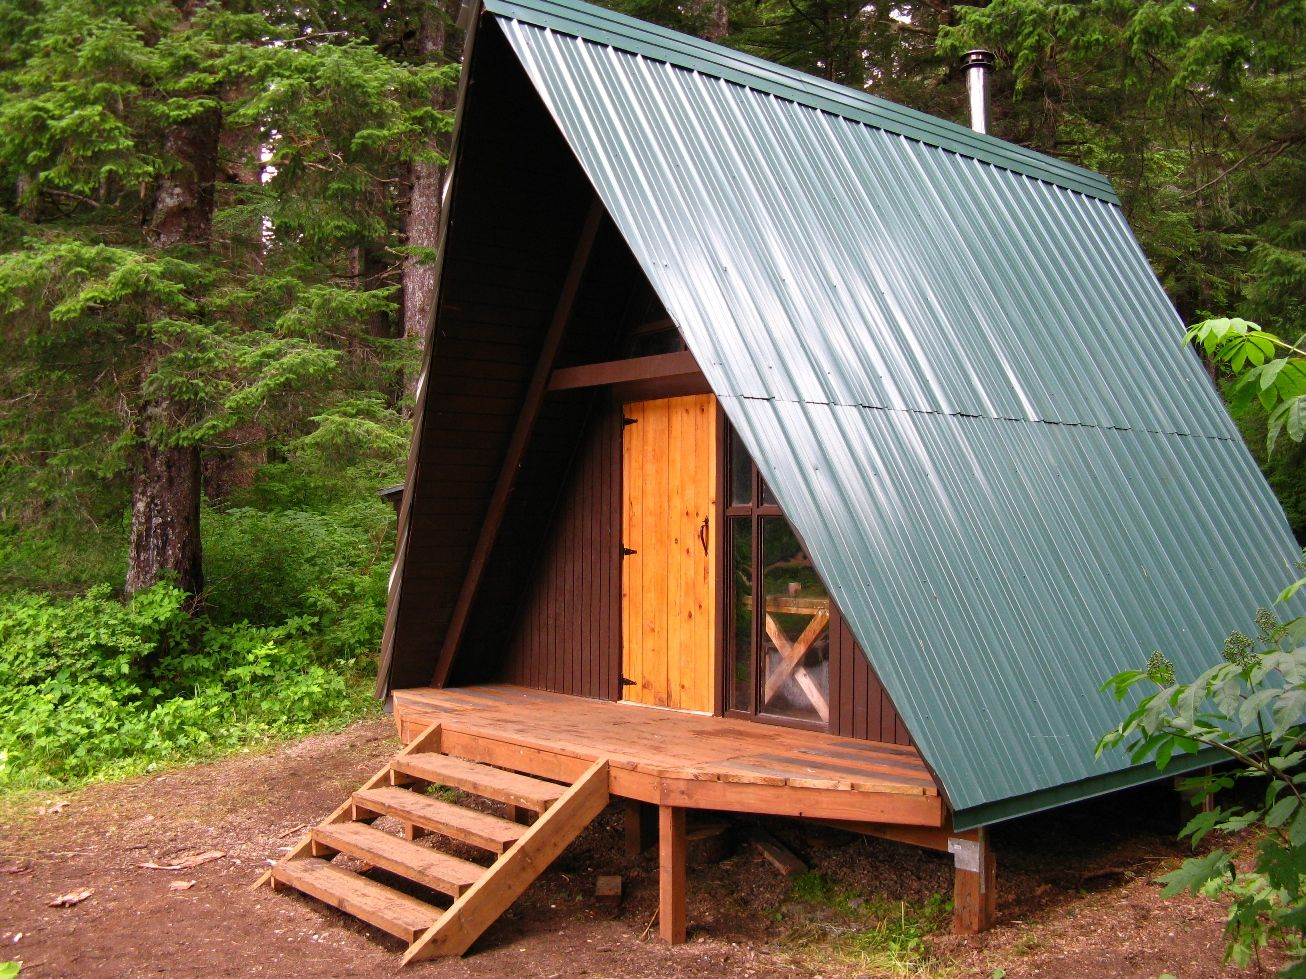 Small cabin option land ideas pinterest cabin for Tiny house cabin plans